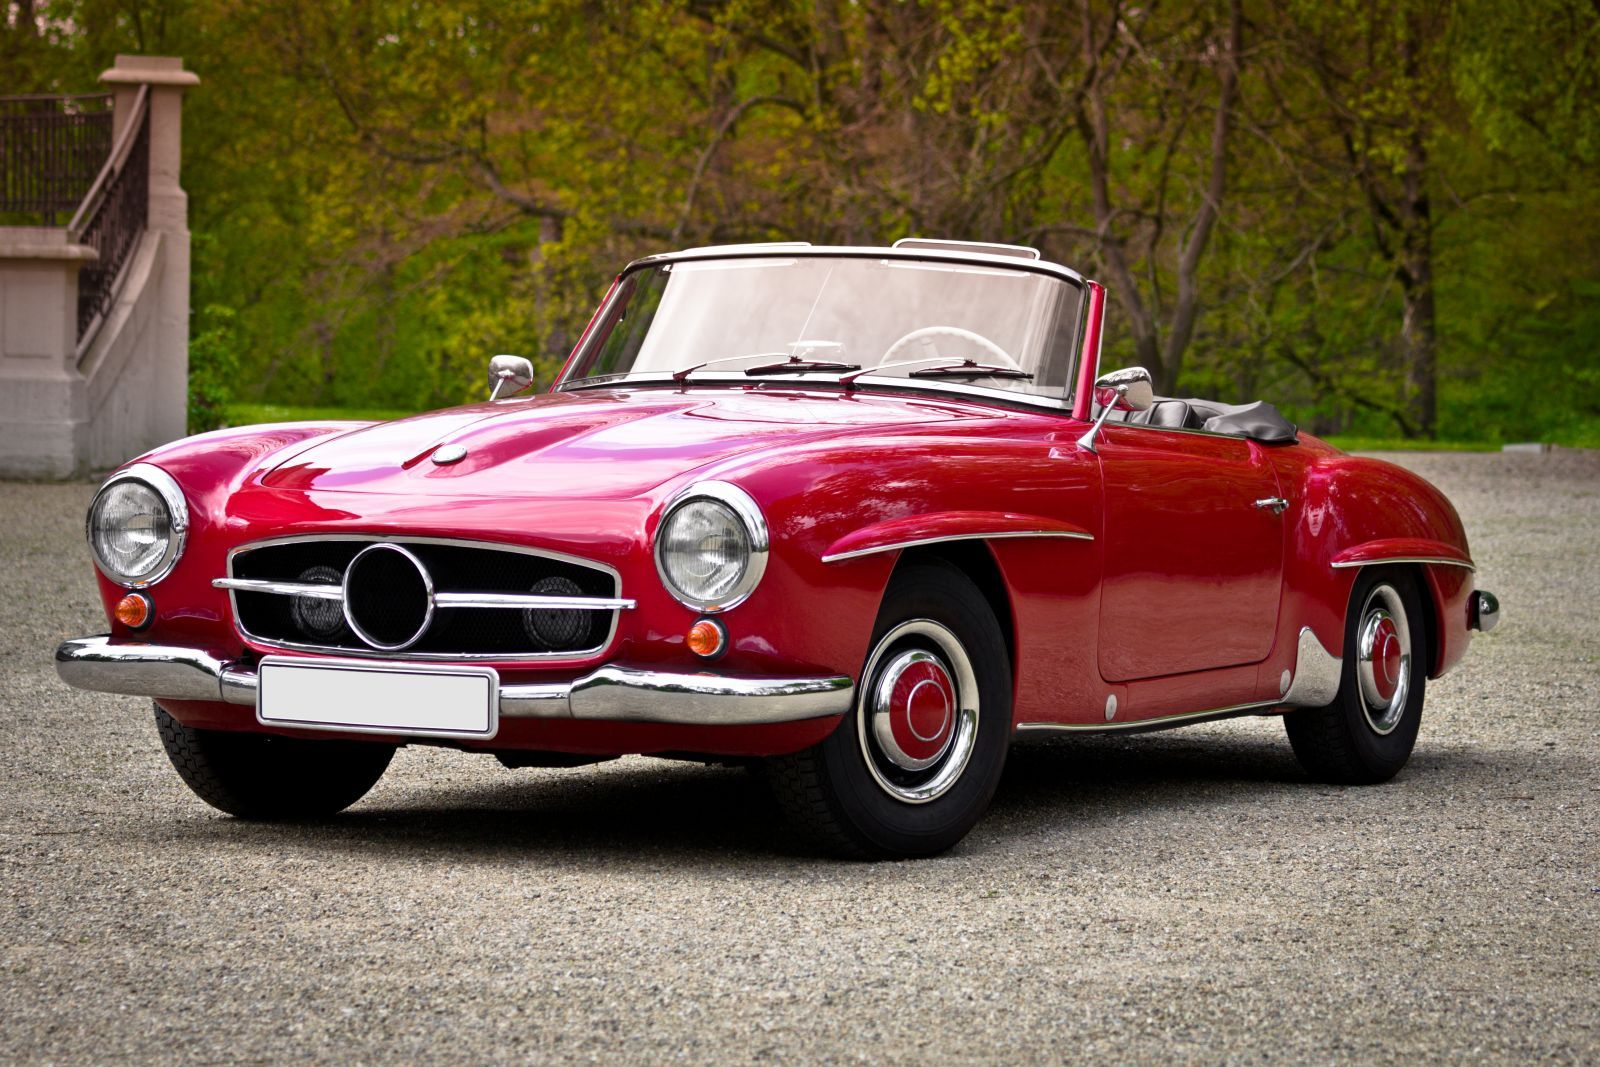 The Most Affordable Classic Cars | Cars, Car pictures and Classic ...